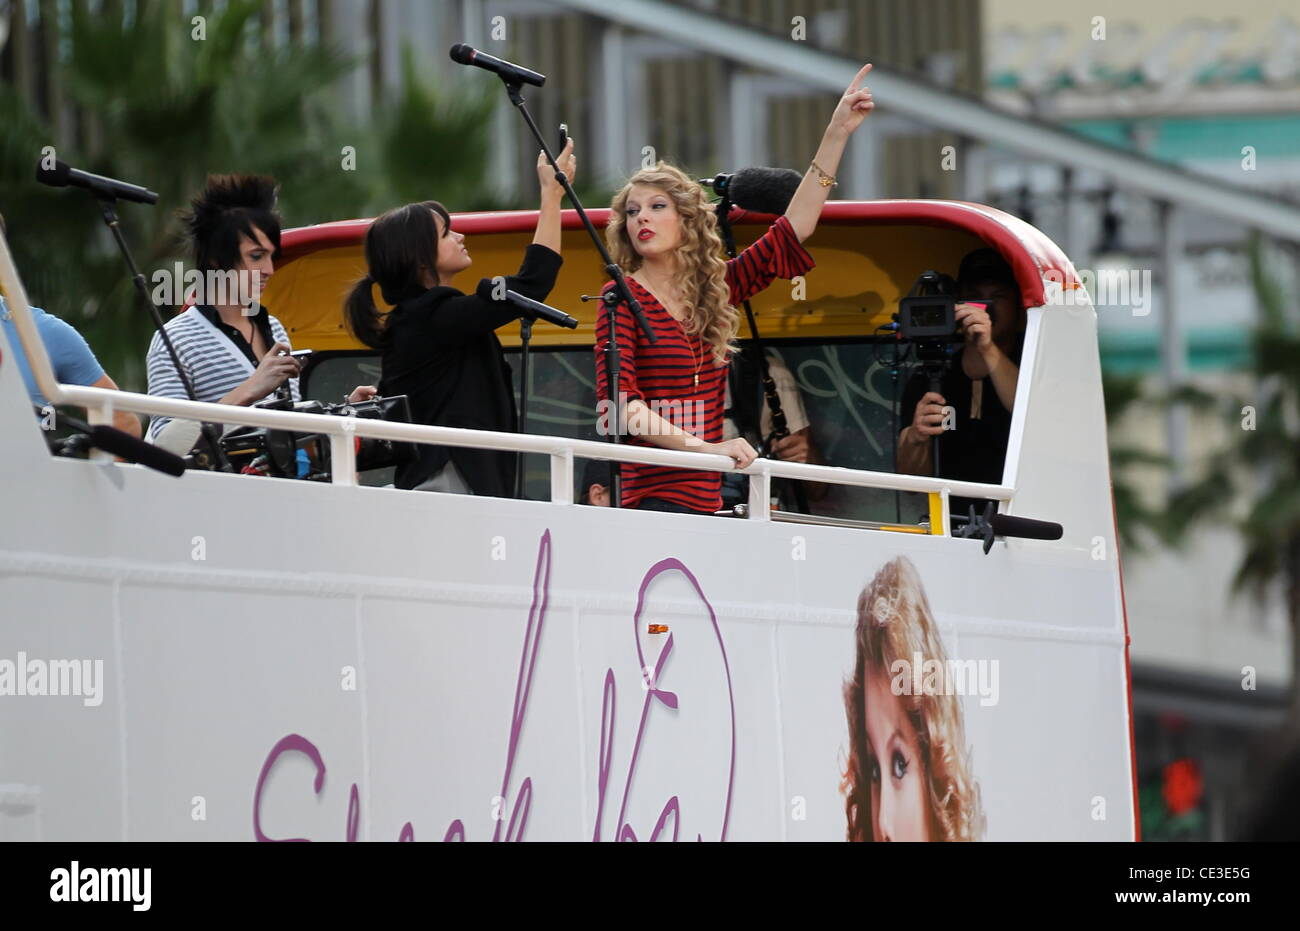 Taylor Swift Greets Fans And Promotes Her New Album Speak Now Atop Stock Photo Alamy